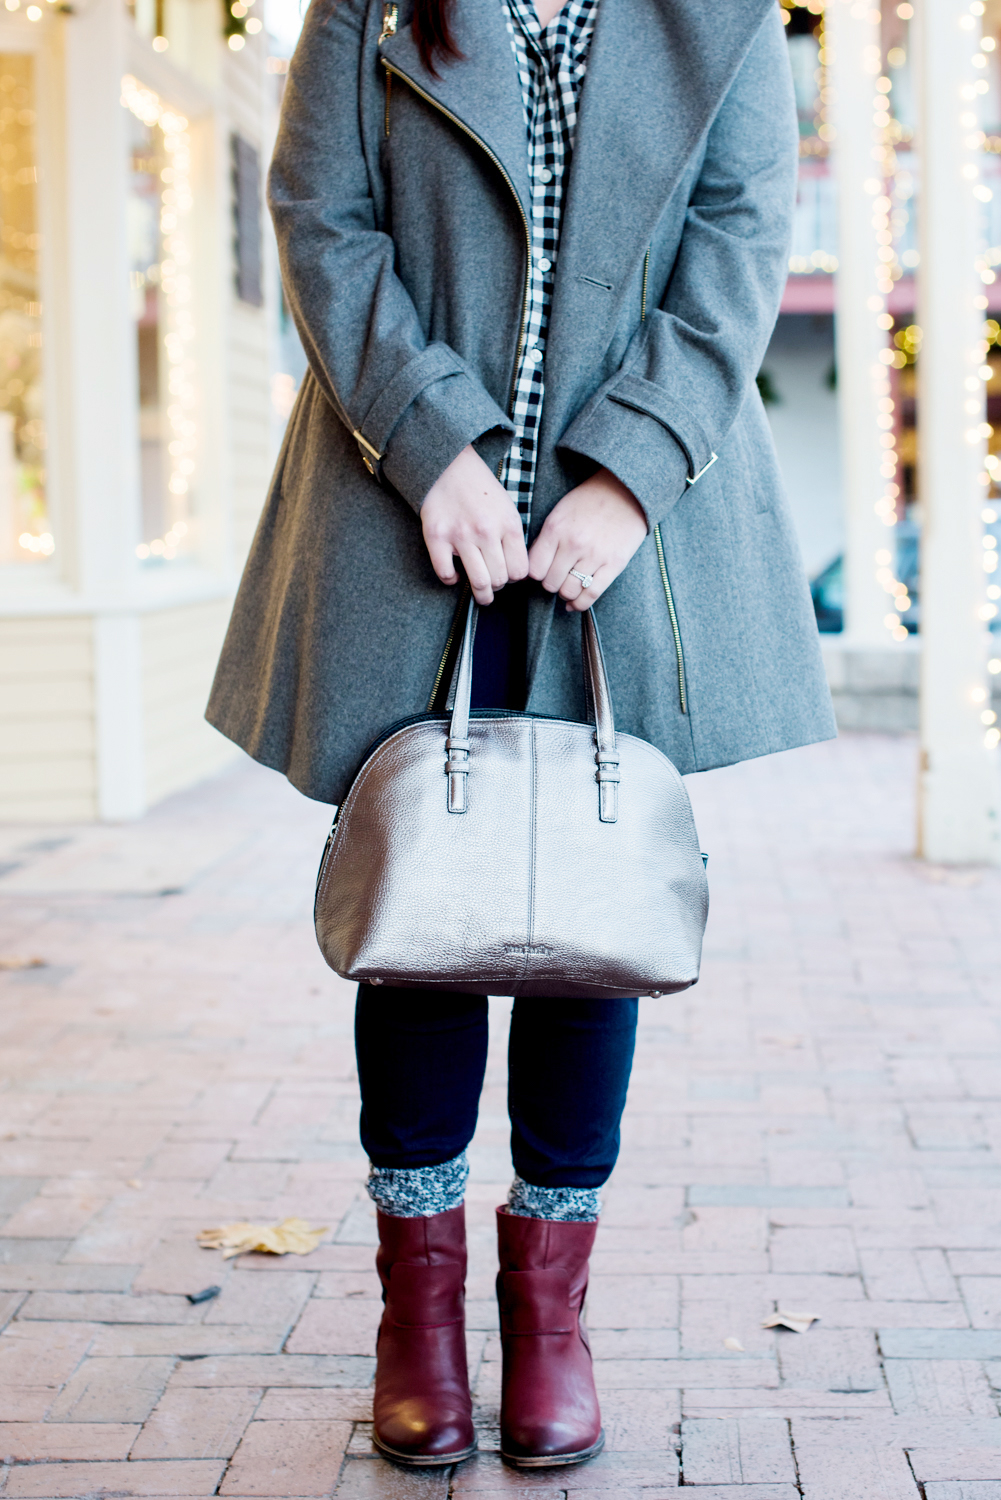 Cold Weather Style | Michael Kors Coat, OTBT Red Boots, Vera bradley Bag via @missmollymoon